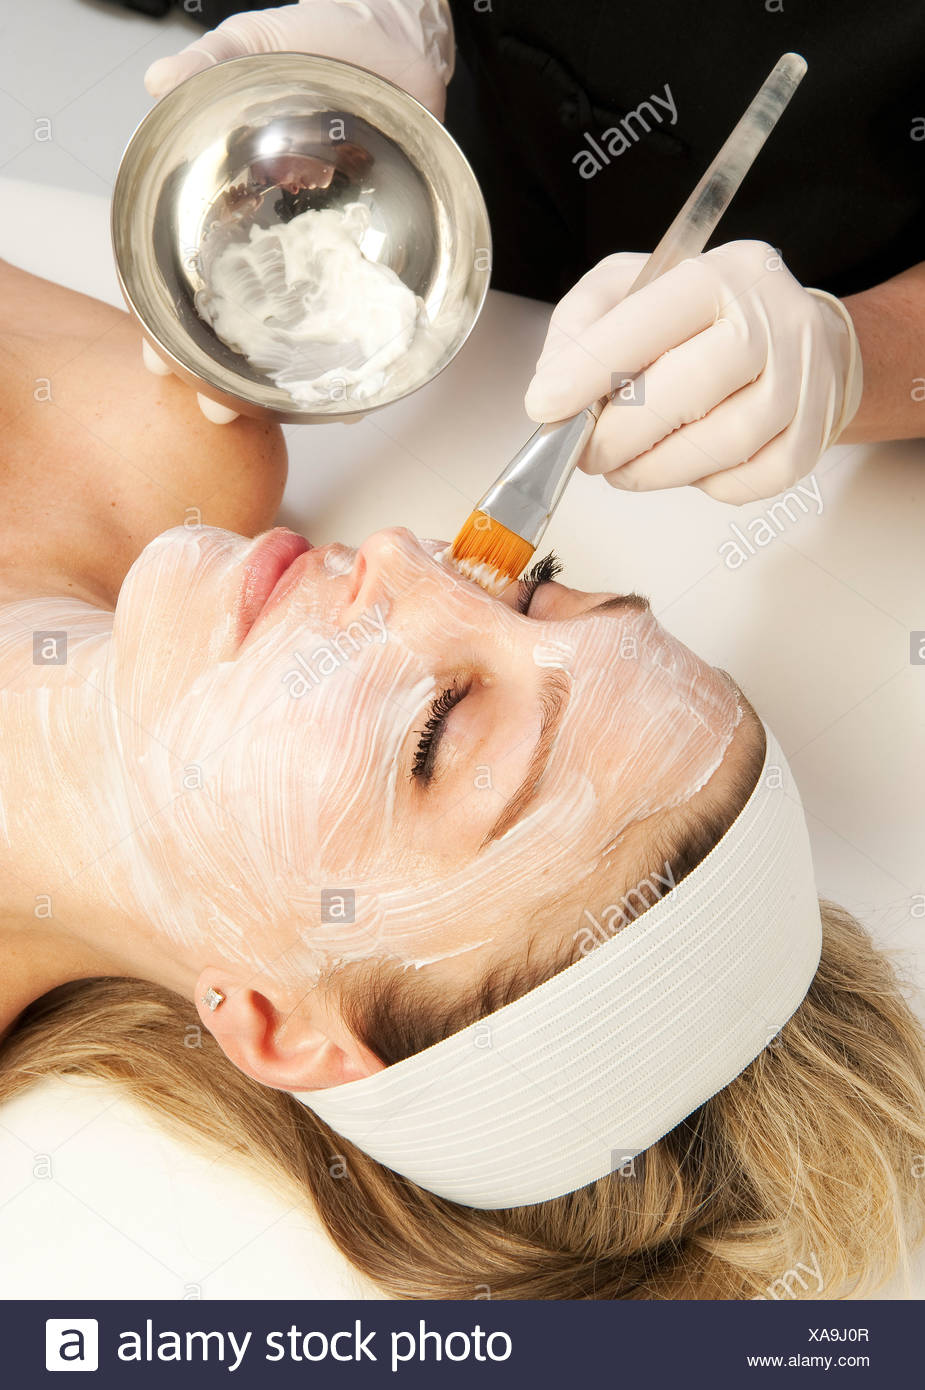 Woman getting a facial treatment at a spa - Stock Image